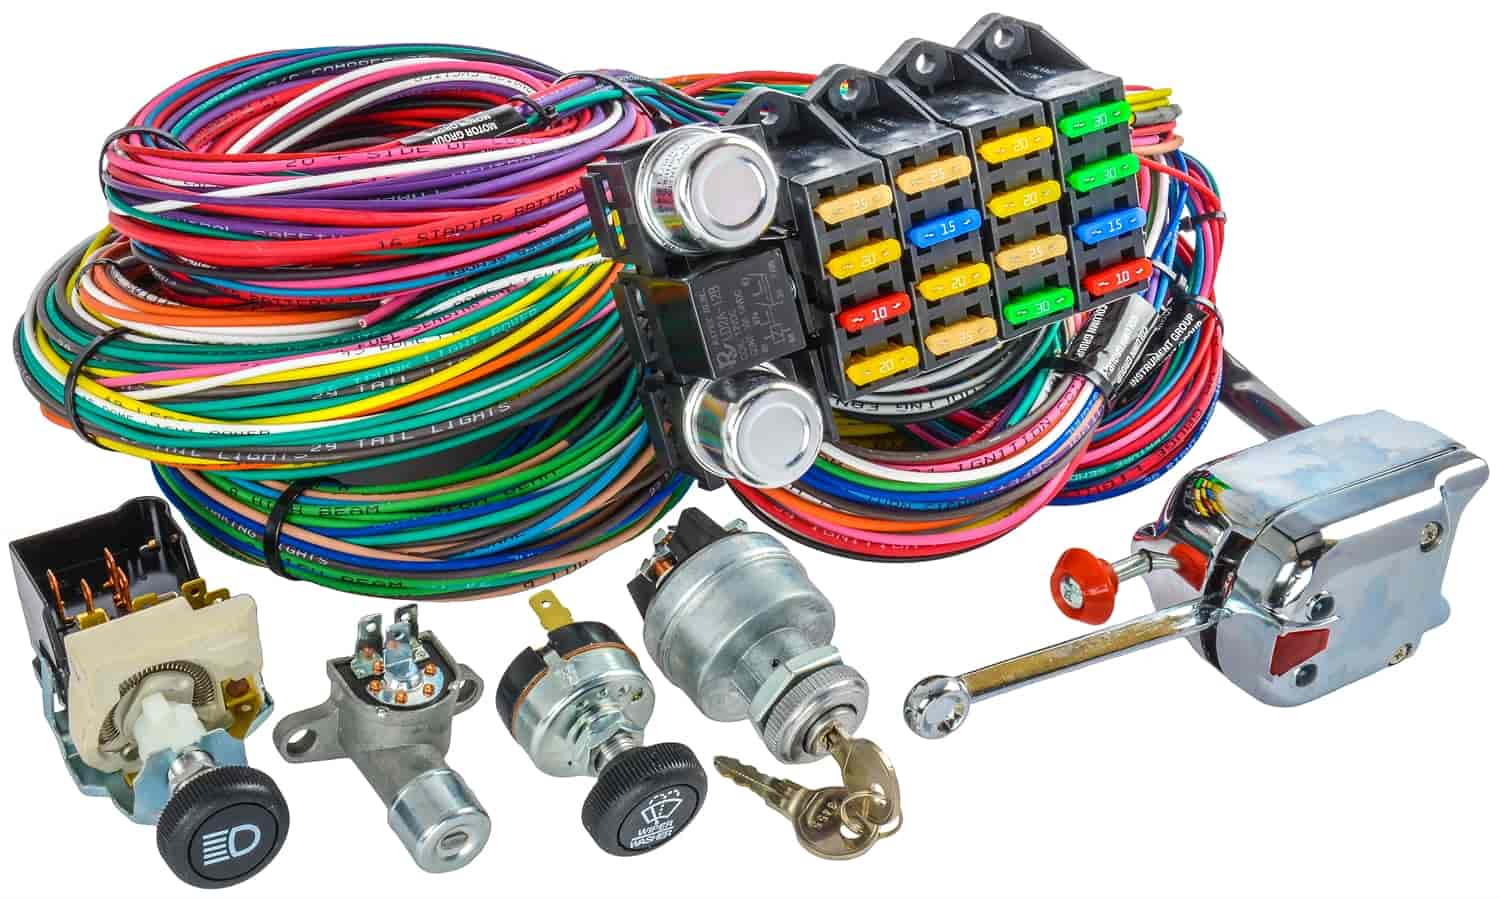 jegs 10405k universal wiring harness switch kit 20 circuit jegs rh jegs com universal wiring harness kit for led lights American Autowire Wiring Kits